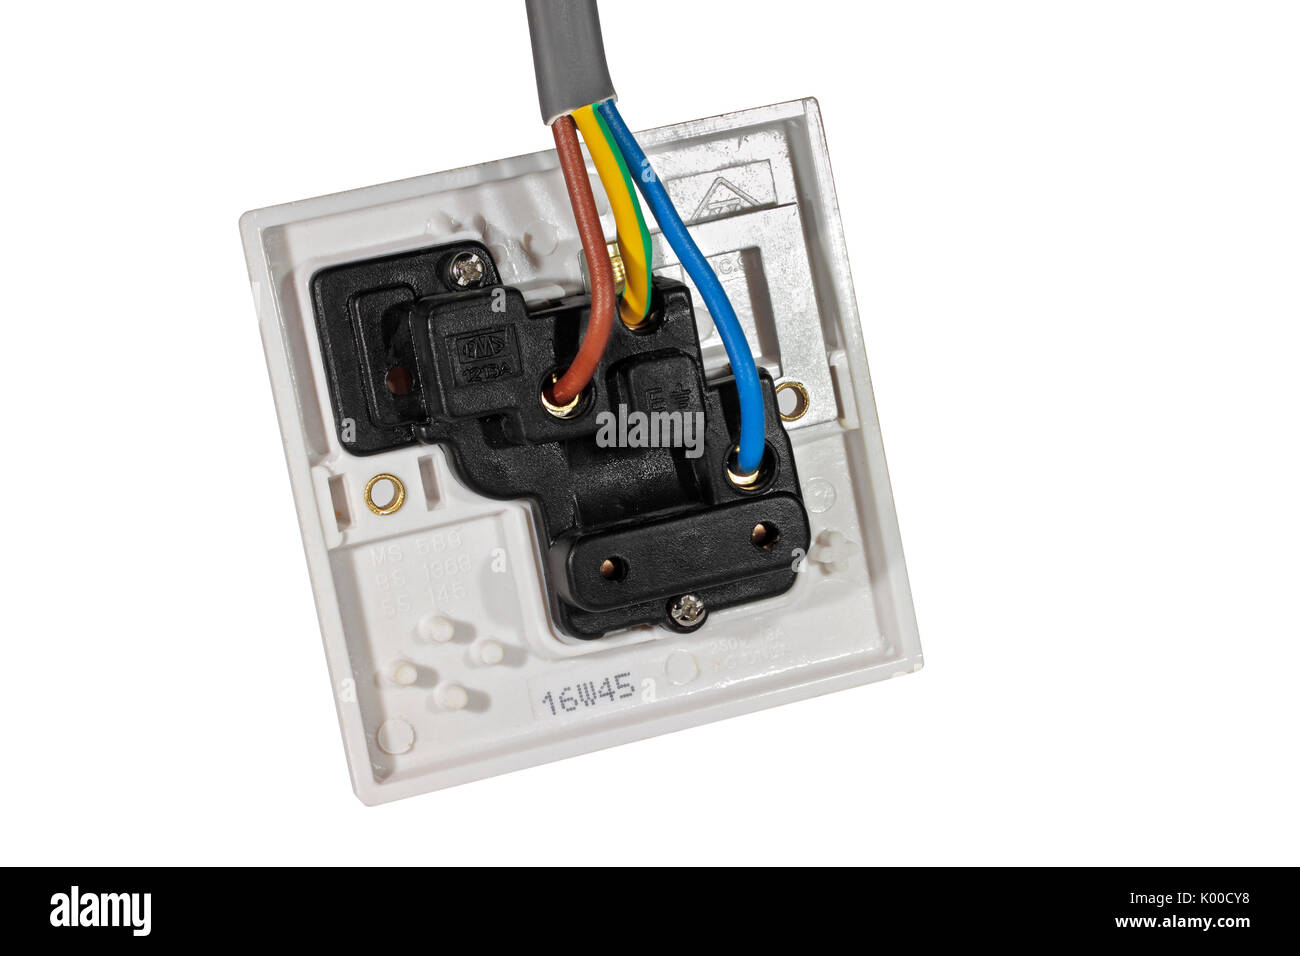 hight resolution of a 250v 13a electrical socket outlet viewed from behind showing wiring isolated on a white background